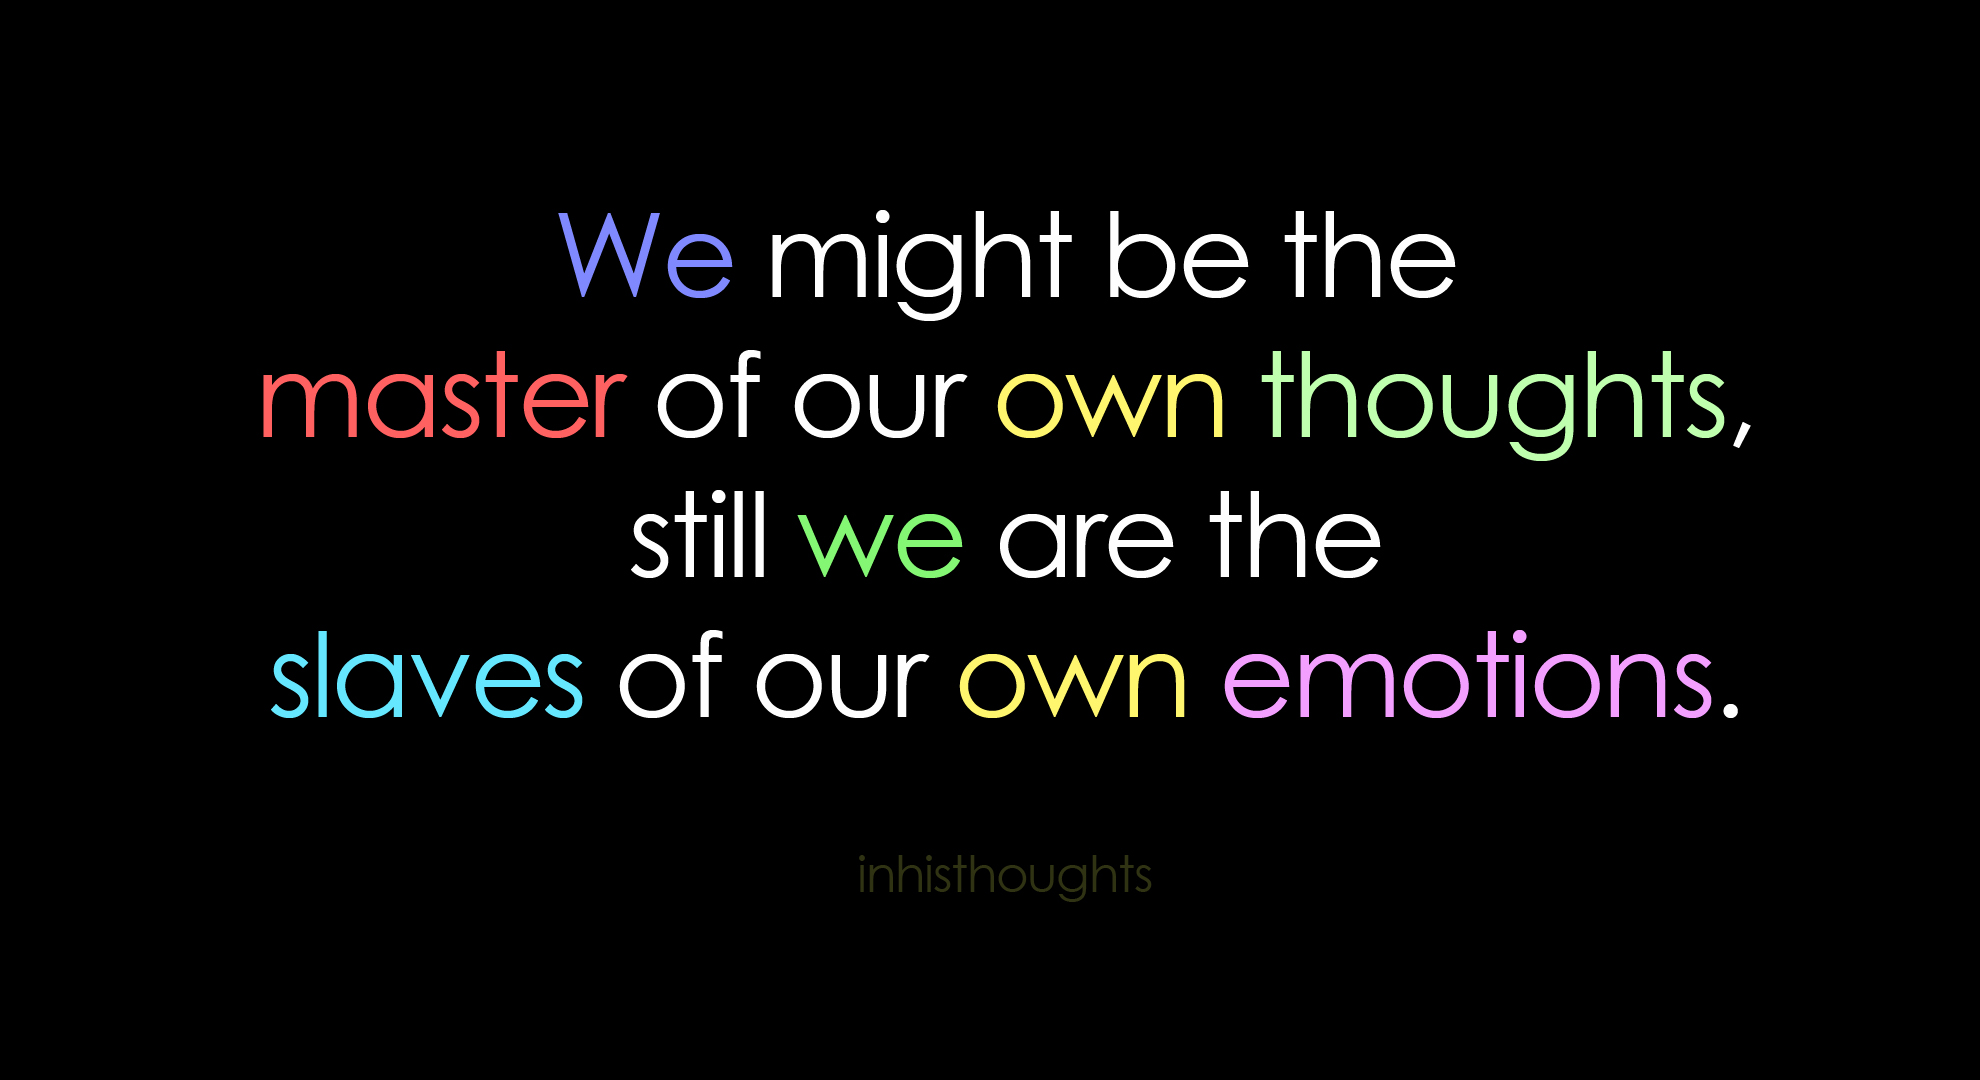 We might be the master of our own thoughts still we are the slaves of our own emotions